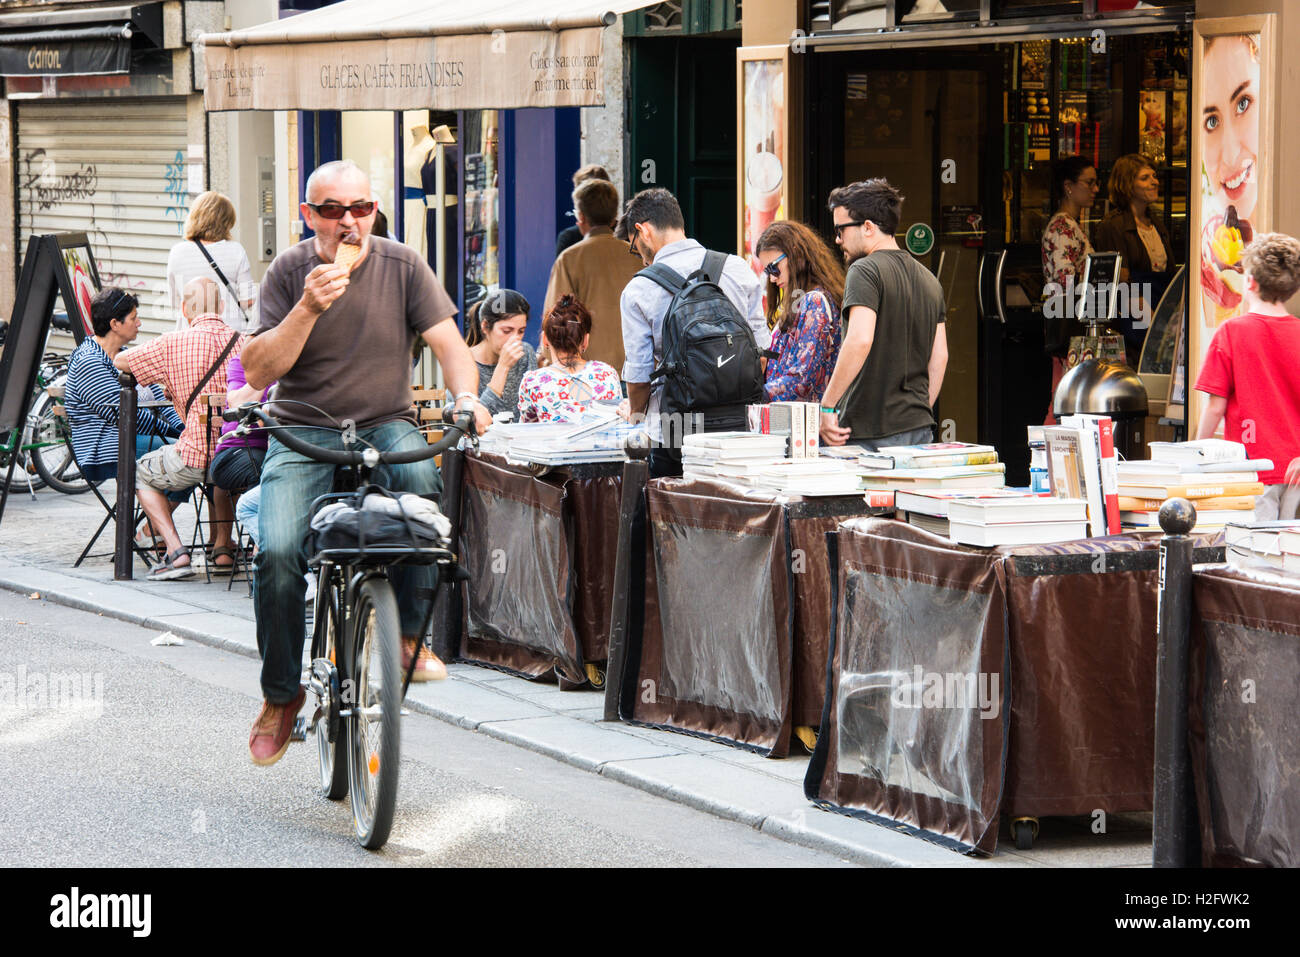 A cyclist eats ice cream as he rides past booksellers in a street in Saint-Germain-des-Prés, - Stock Image